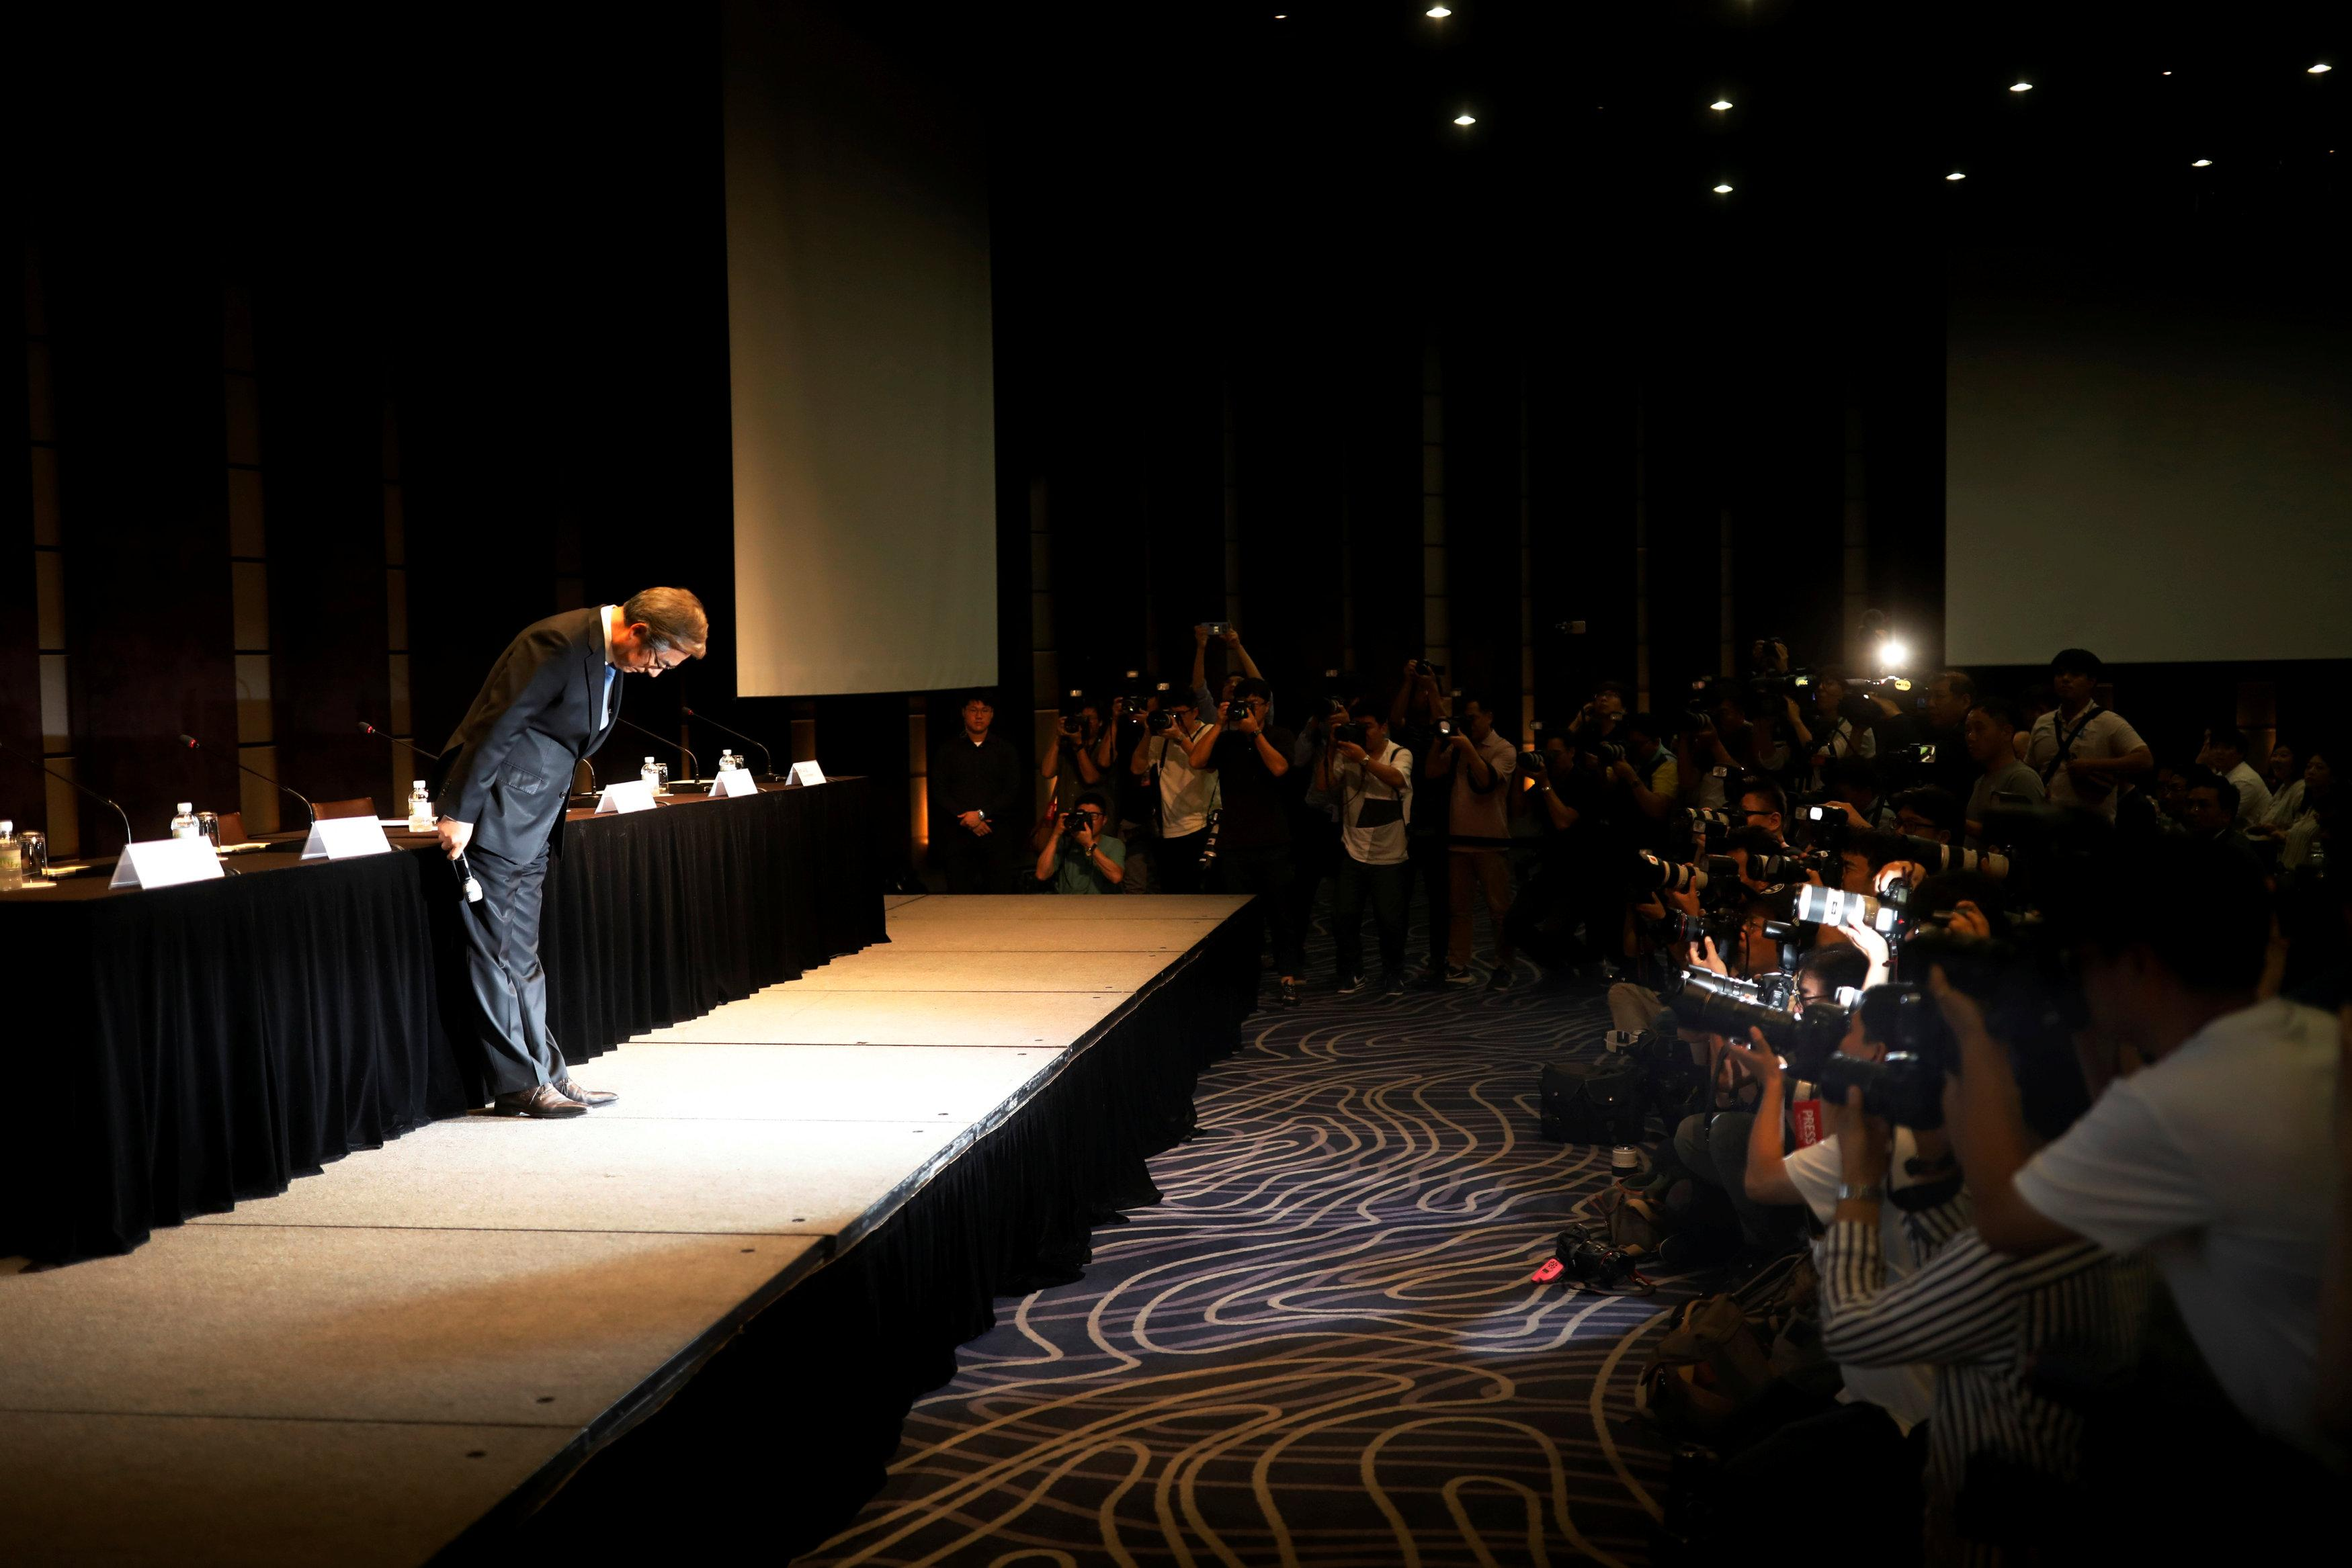 Kim Hyo-joon, chairman of BMW Korea, bows during a news conference in Seoul, South Korea, August 6, 2018.   Kim Hong-Ji